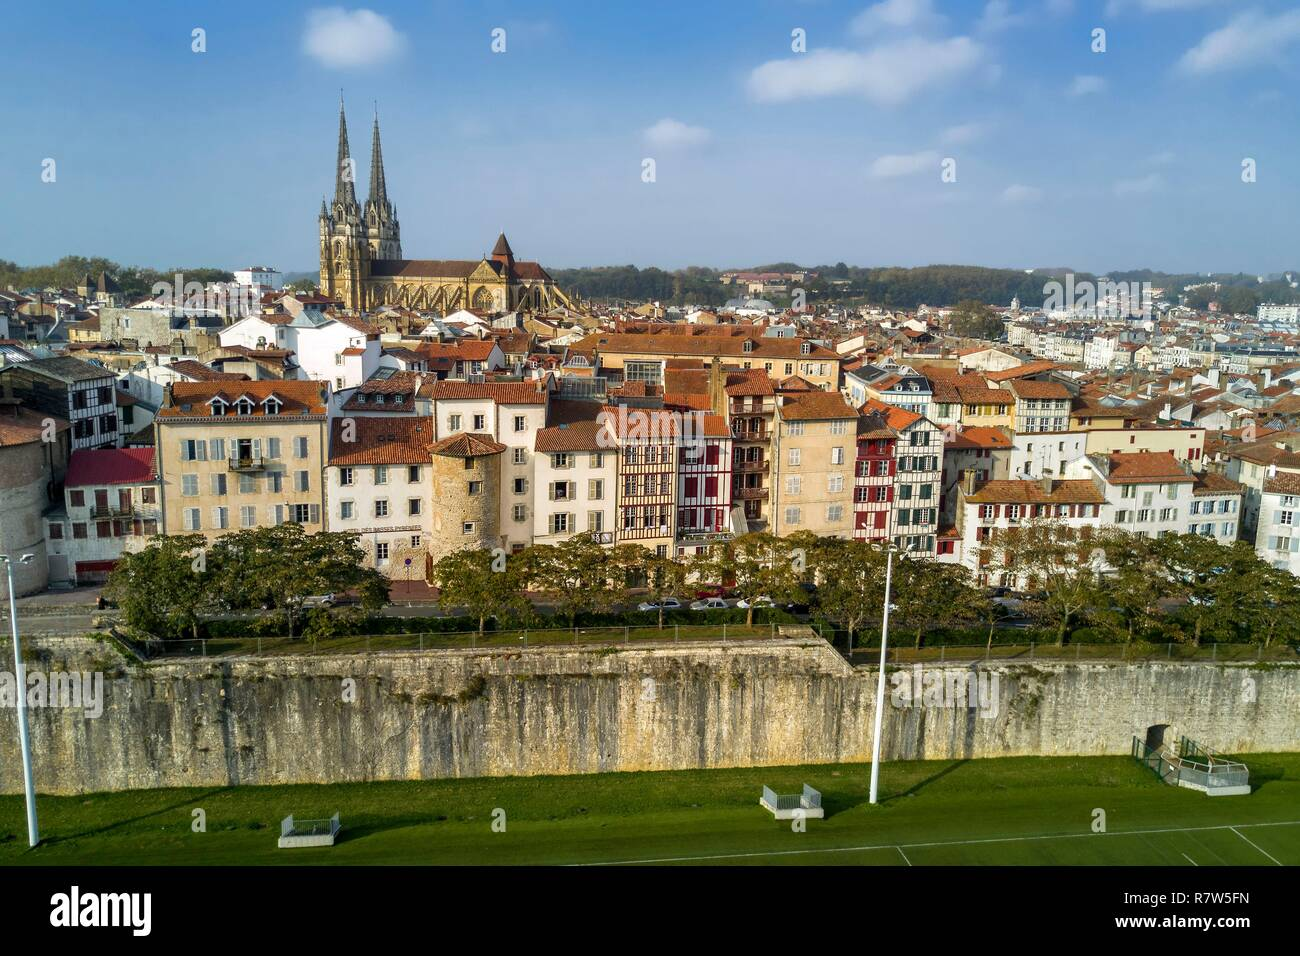 France, Pyrenees Atlantiques, Basque Country, Bayonne, the spires of St. Catherine's Cathedral behind the towers of the former ramparts integrated in the buildings of the rue Tour de Sault, the fortifications of Vauban in the foreground (aerial view) - Stock Image